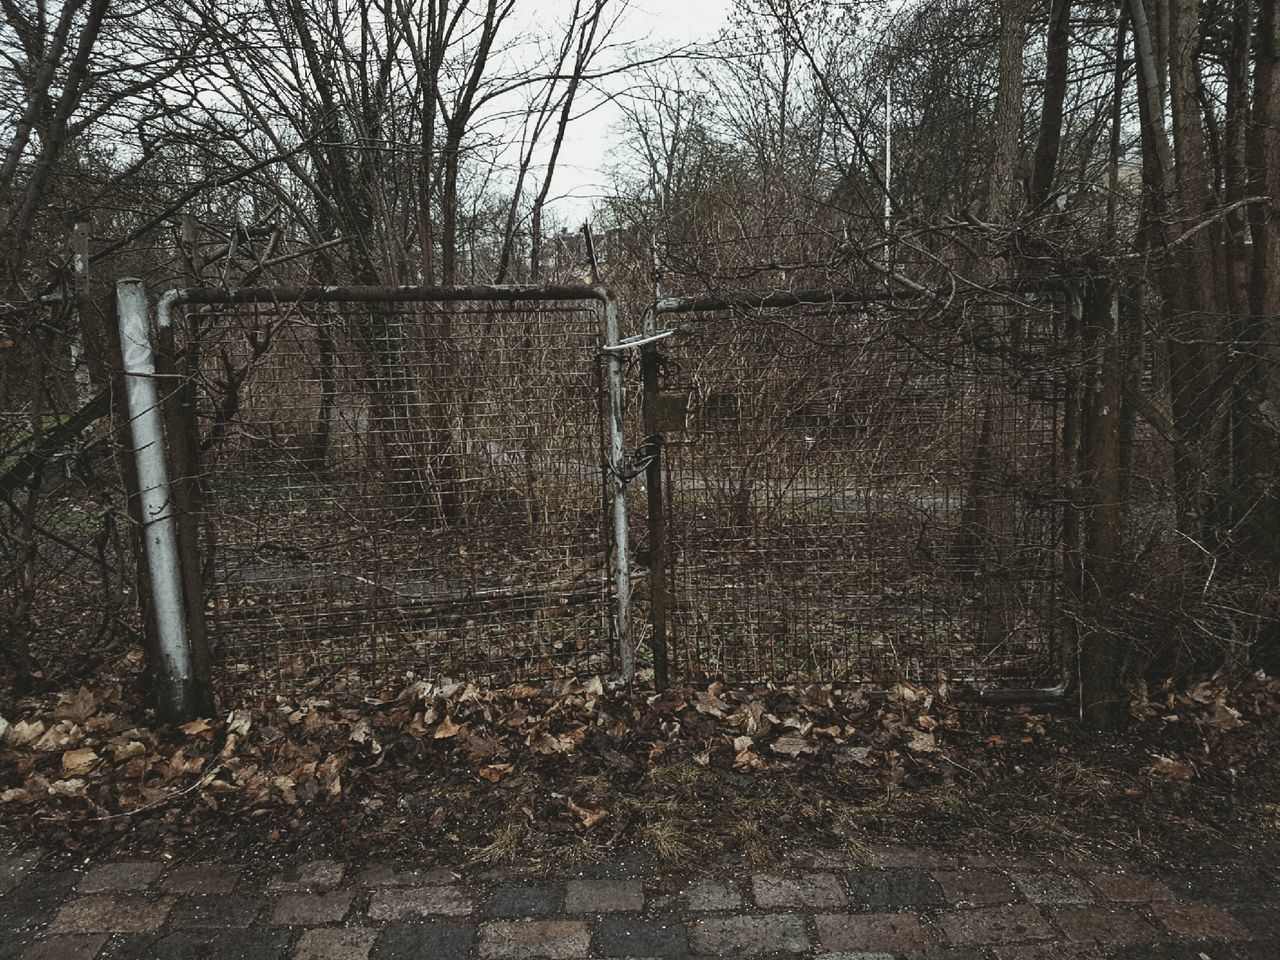 Wasteland pt I Tree Nature Day Metal No People Outdoors Sky Simple Photography Taking Pictures Denmark Wasteland Locked Gate Dark Winter Gloomy Gloomy Day Gloomy Weather Trees Leaves Fall Leaves Fallen Leaves Barren Barren Trees